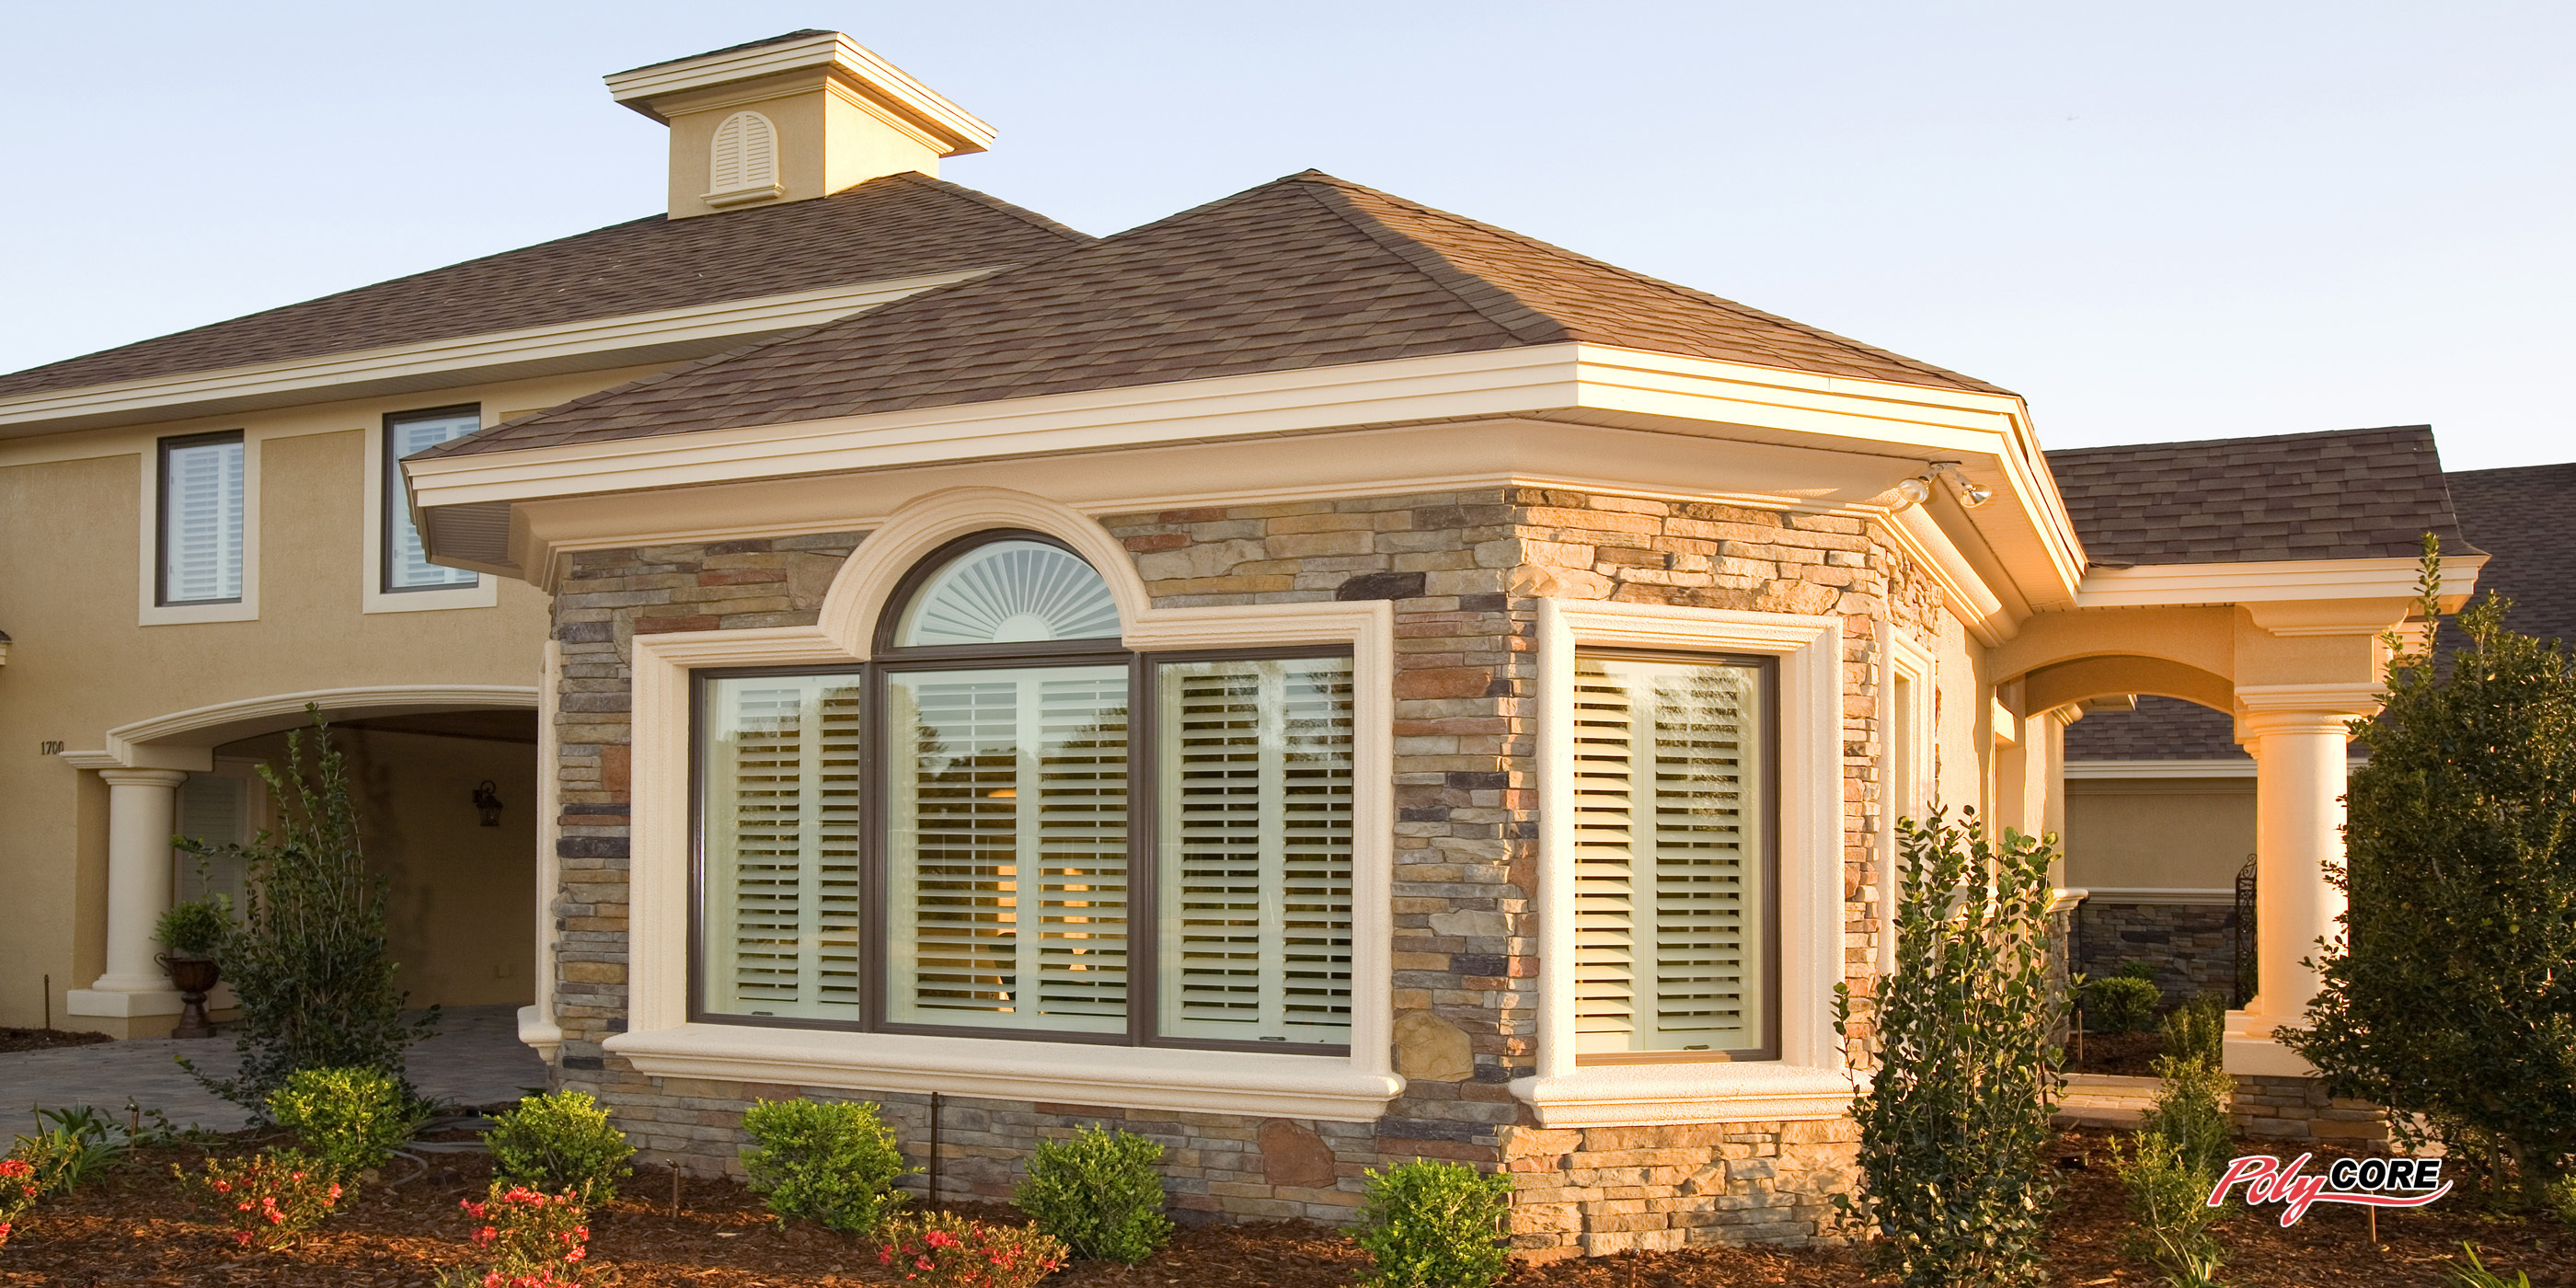 Exterior: Contact Us - The Plantation Shutter Company